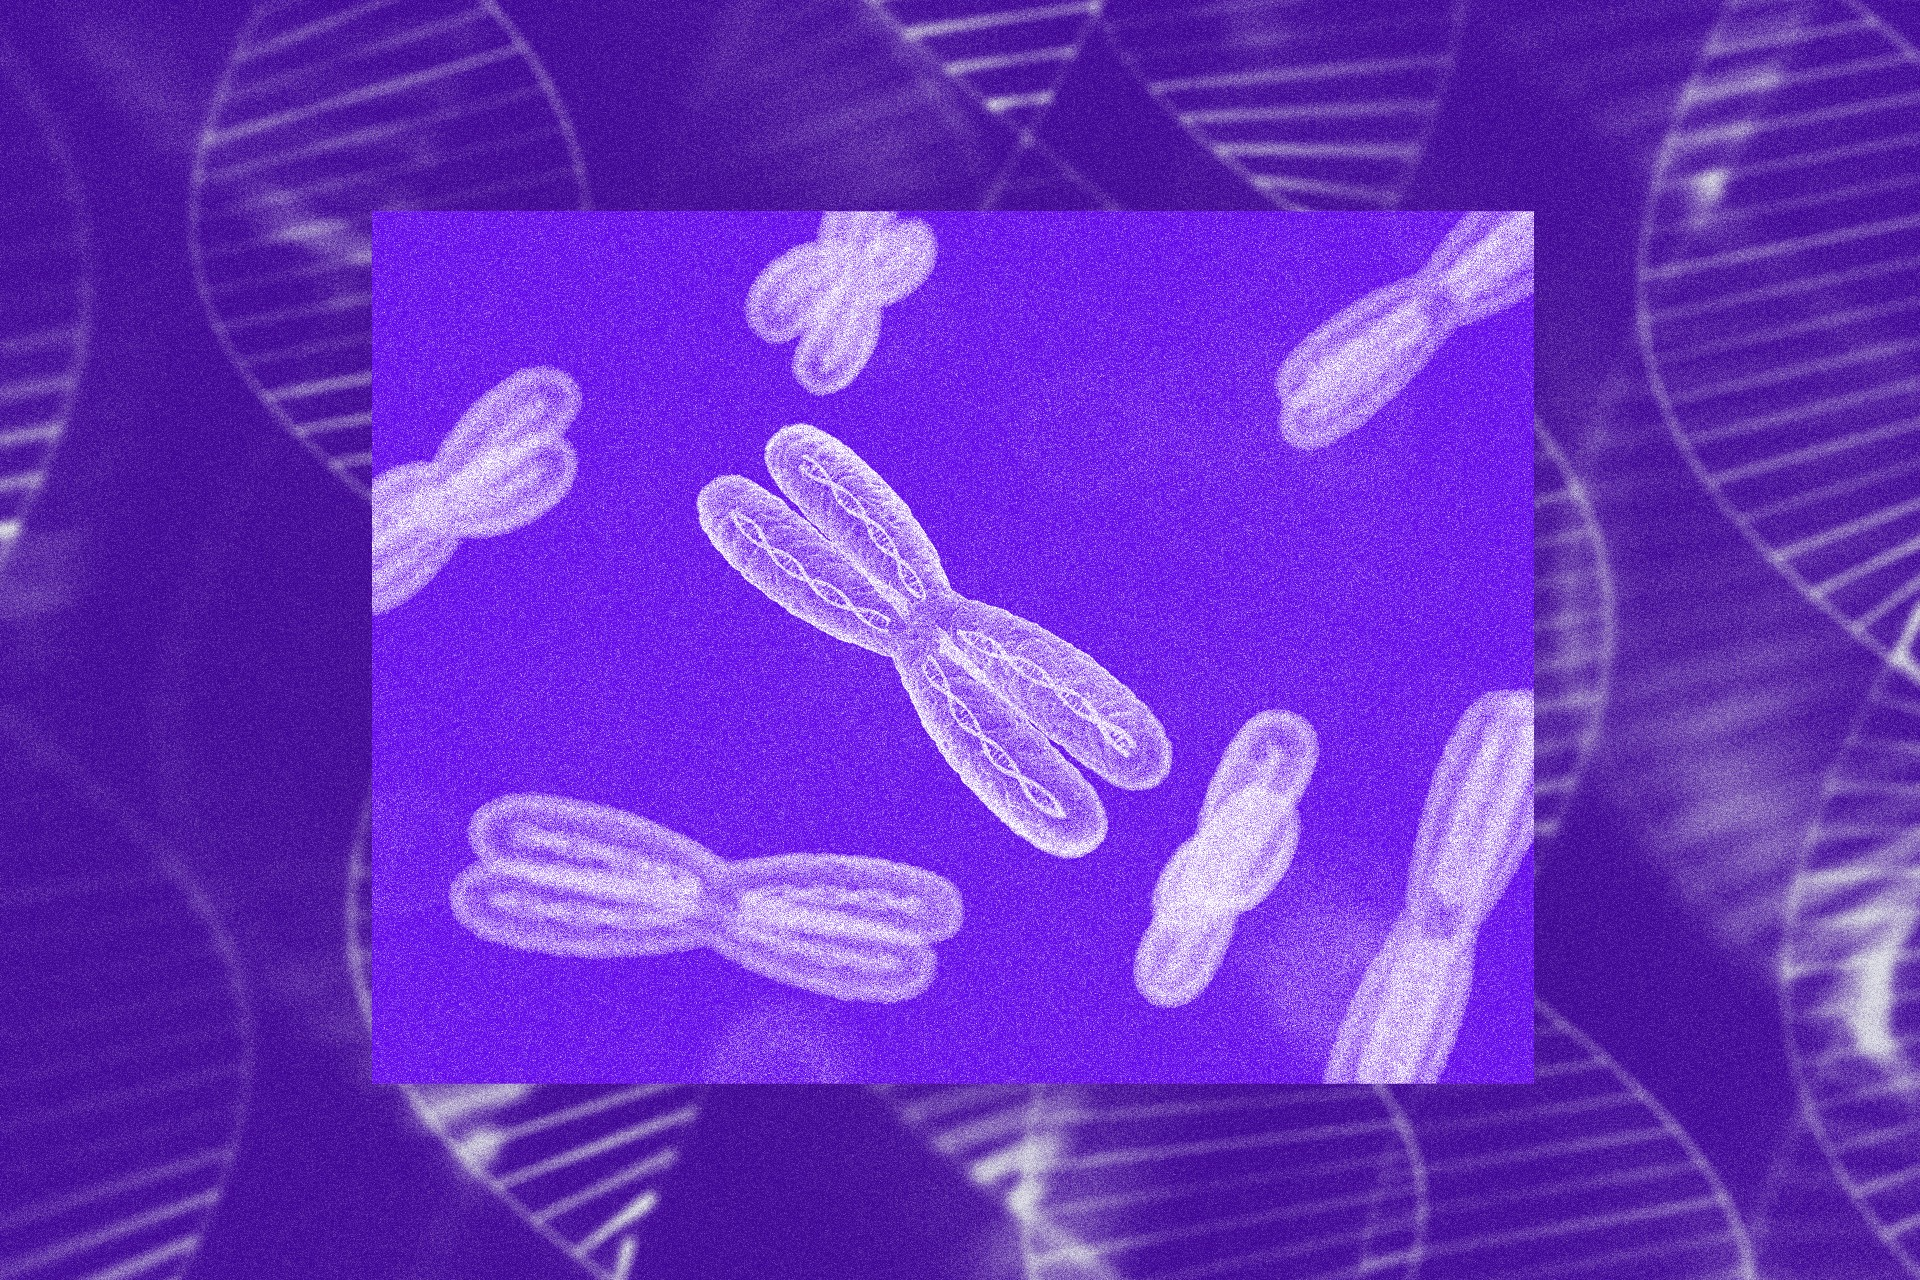 Photo illustration of X chromosomes against a background of wispy DNA helices.